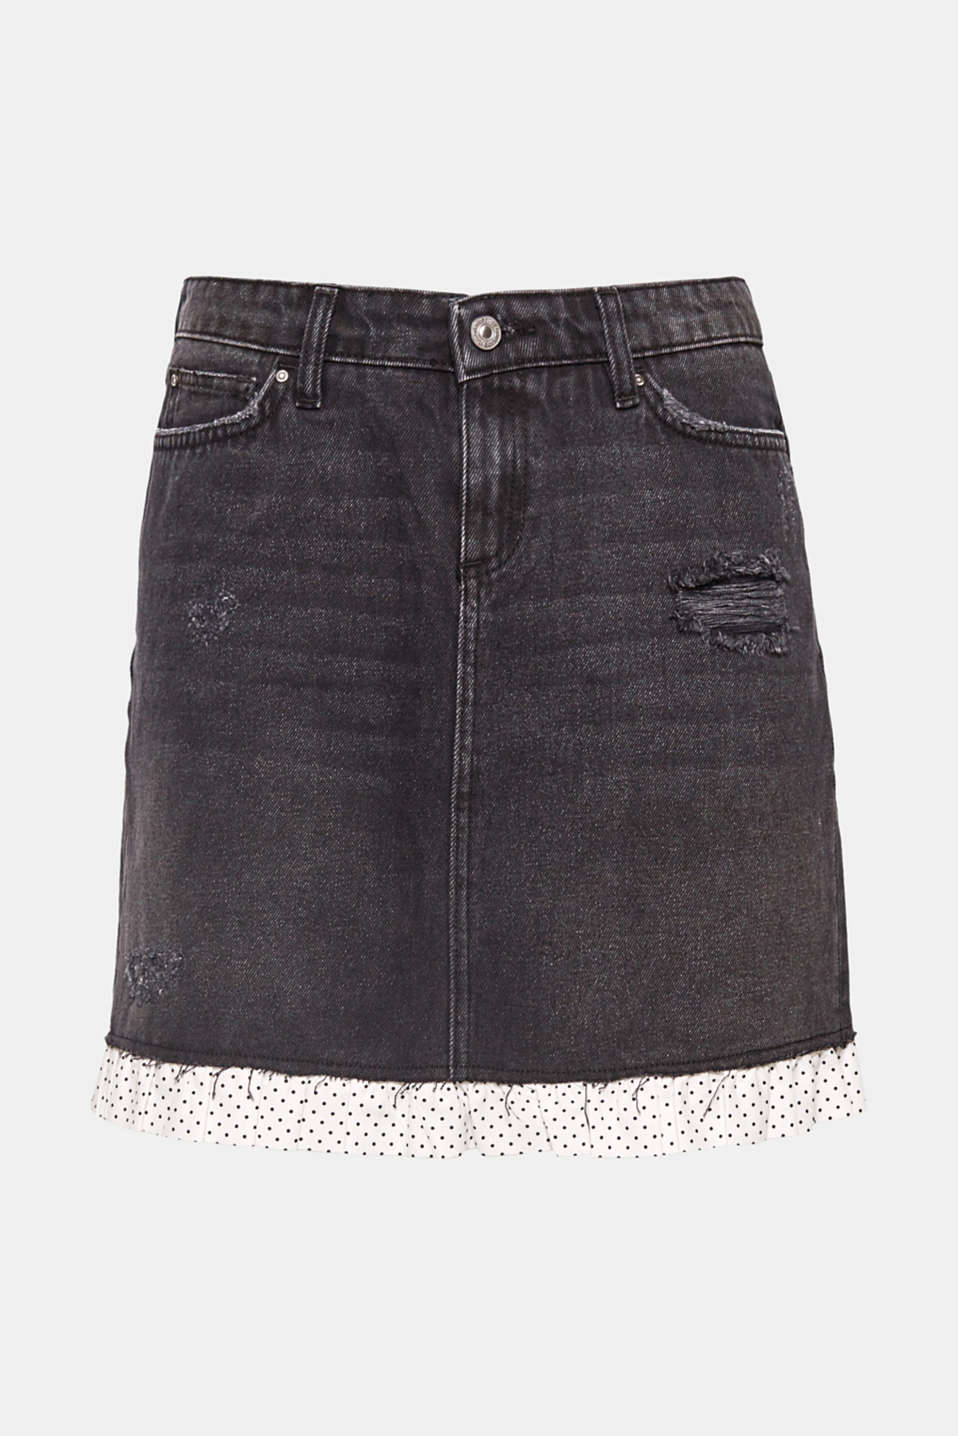 We love denim! This mini skirt in a distressed look stands out with its pretty polka dot frill trim.